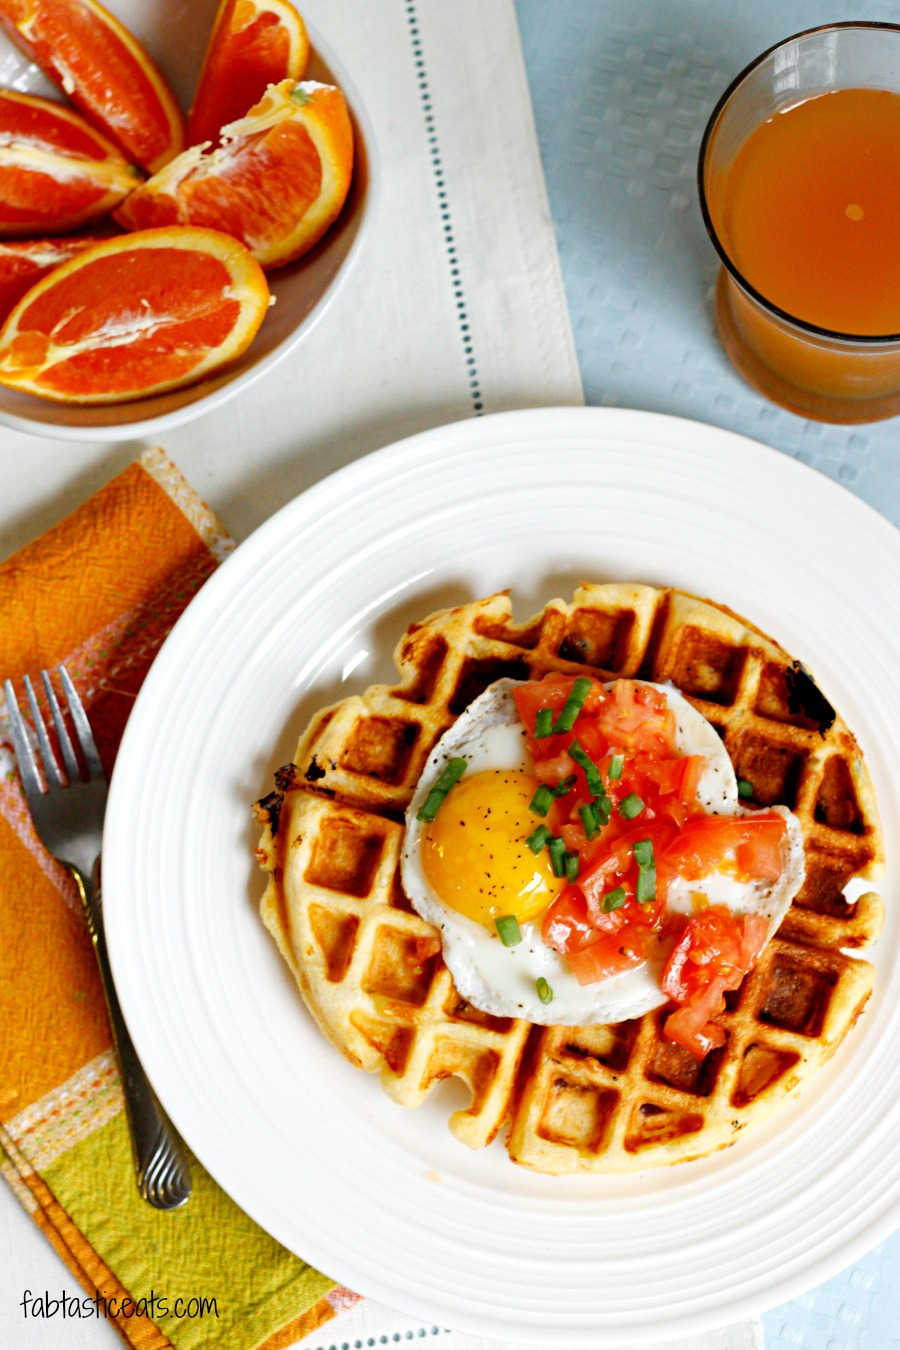 Cheddar Cornmeal Waffles with